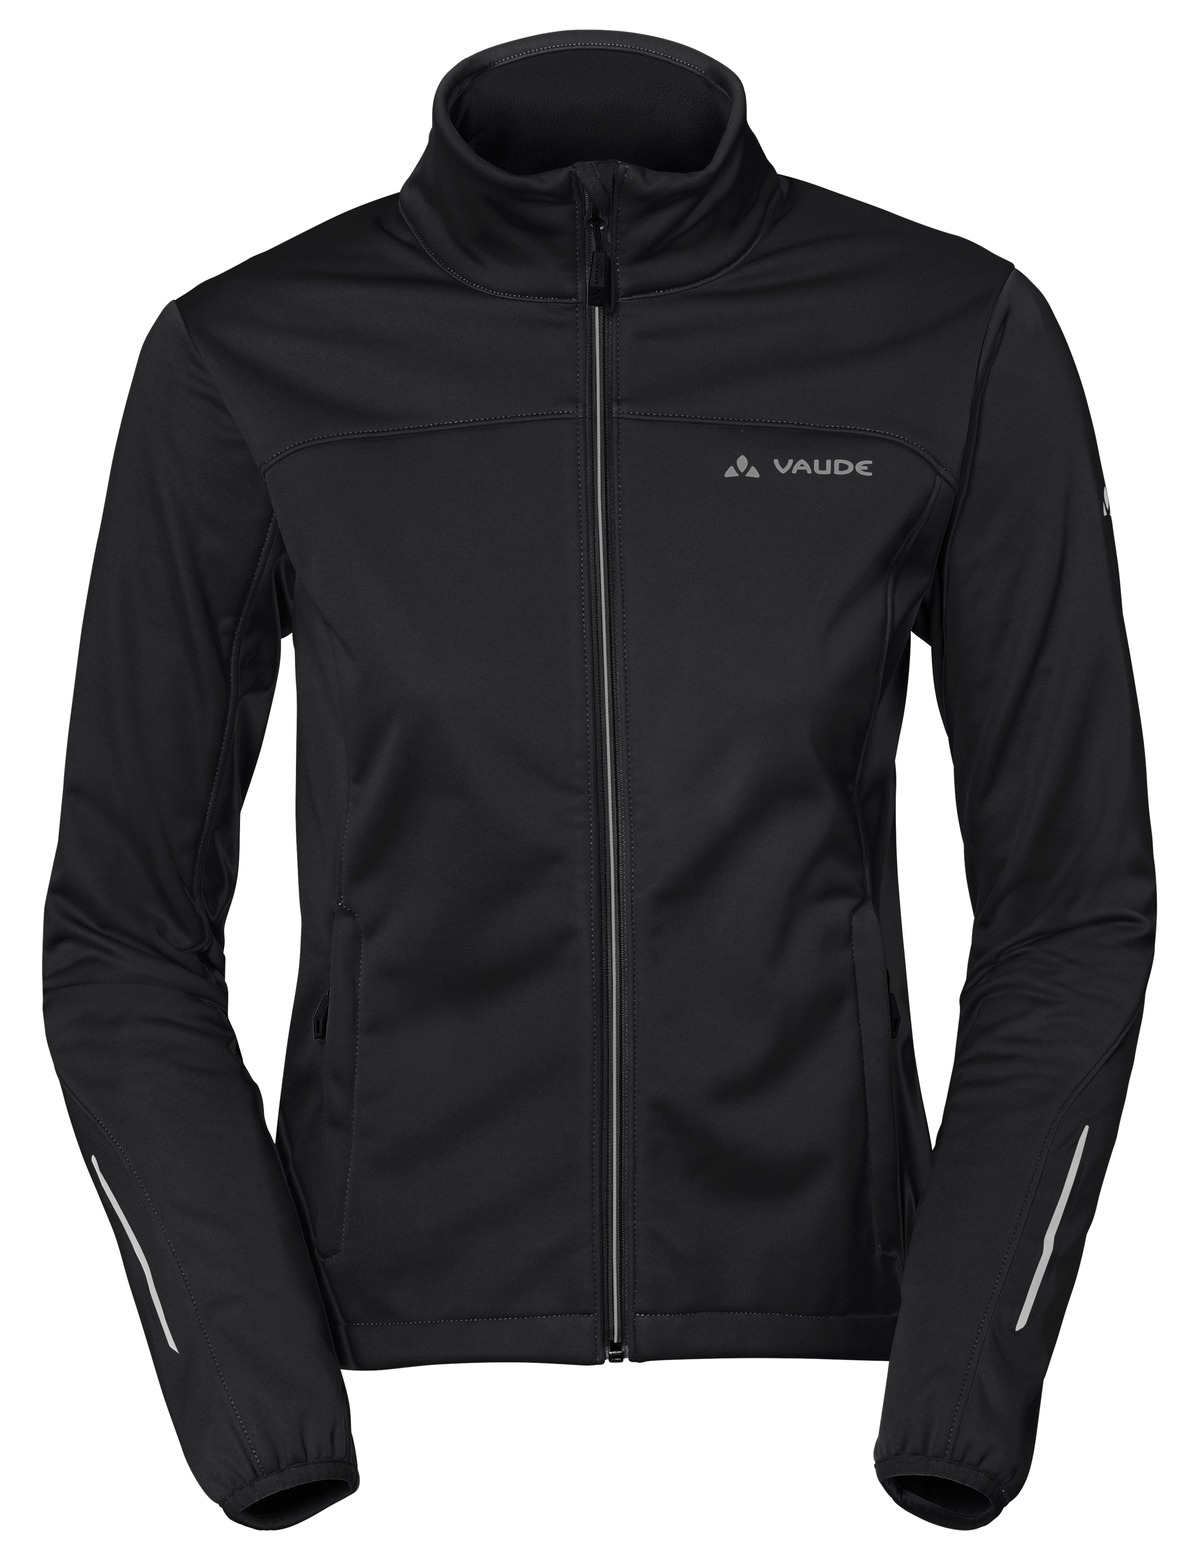 VAUDE Women´s Wintry Jacket III black Größe 36 - schneider-sports